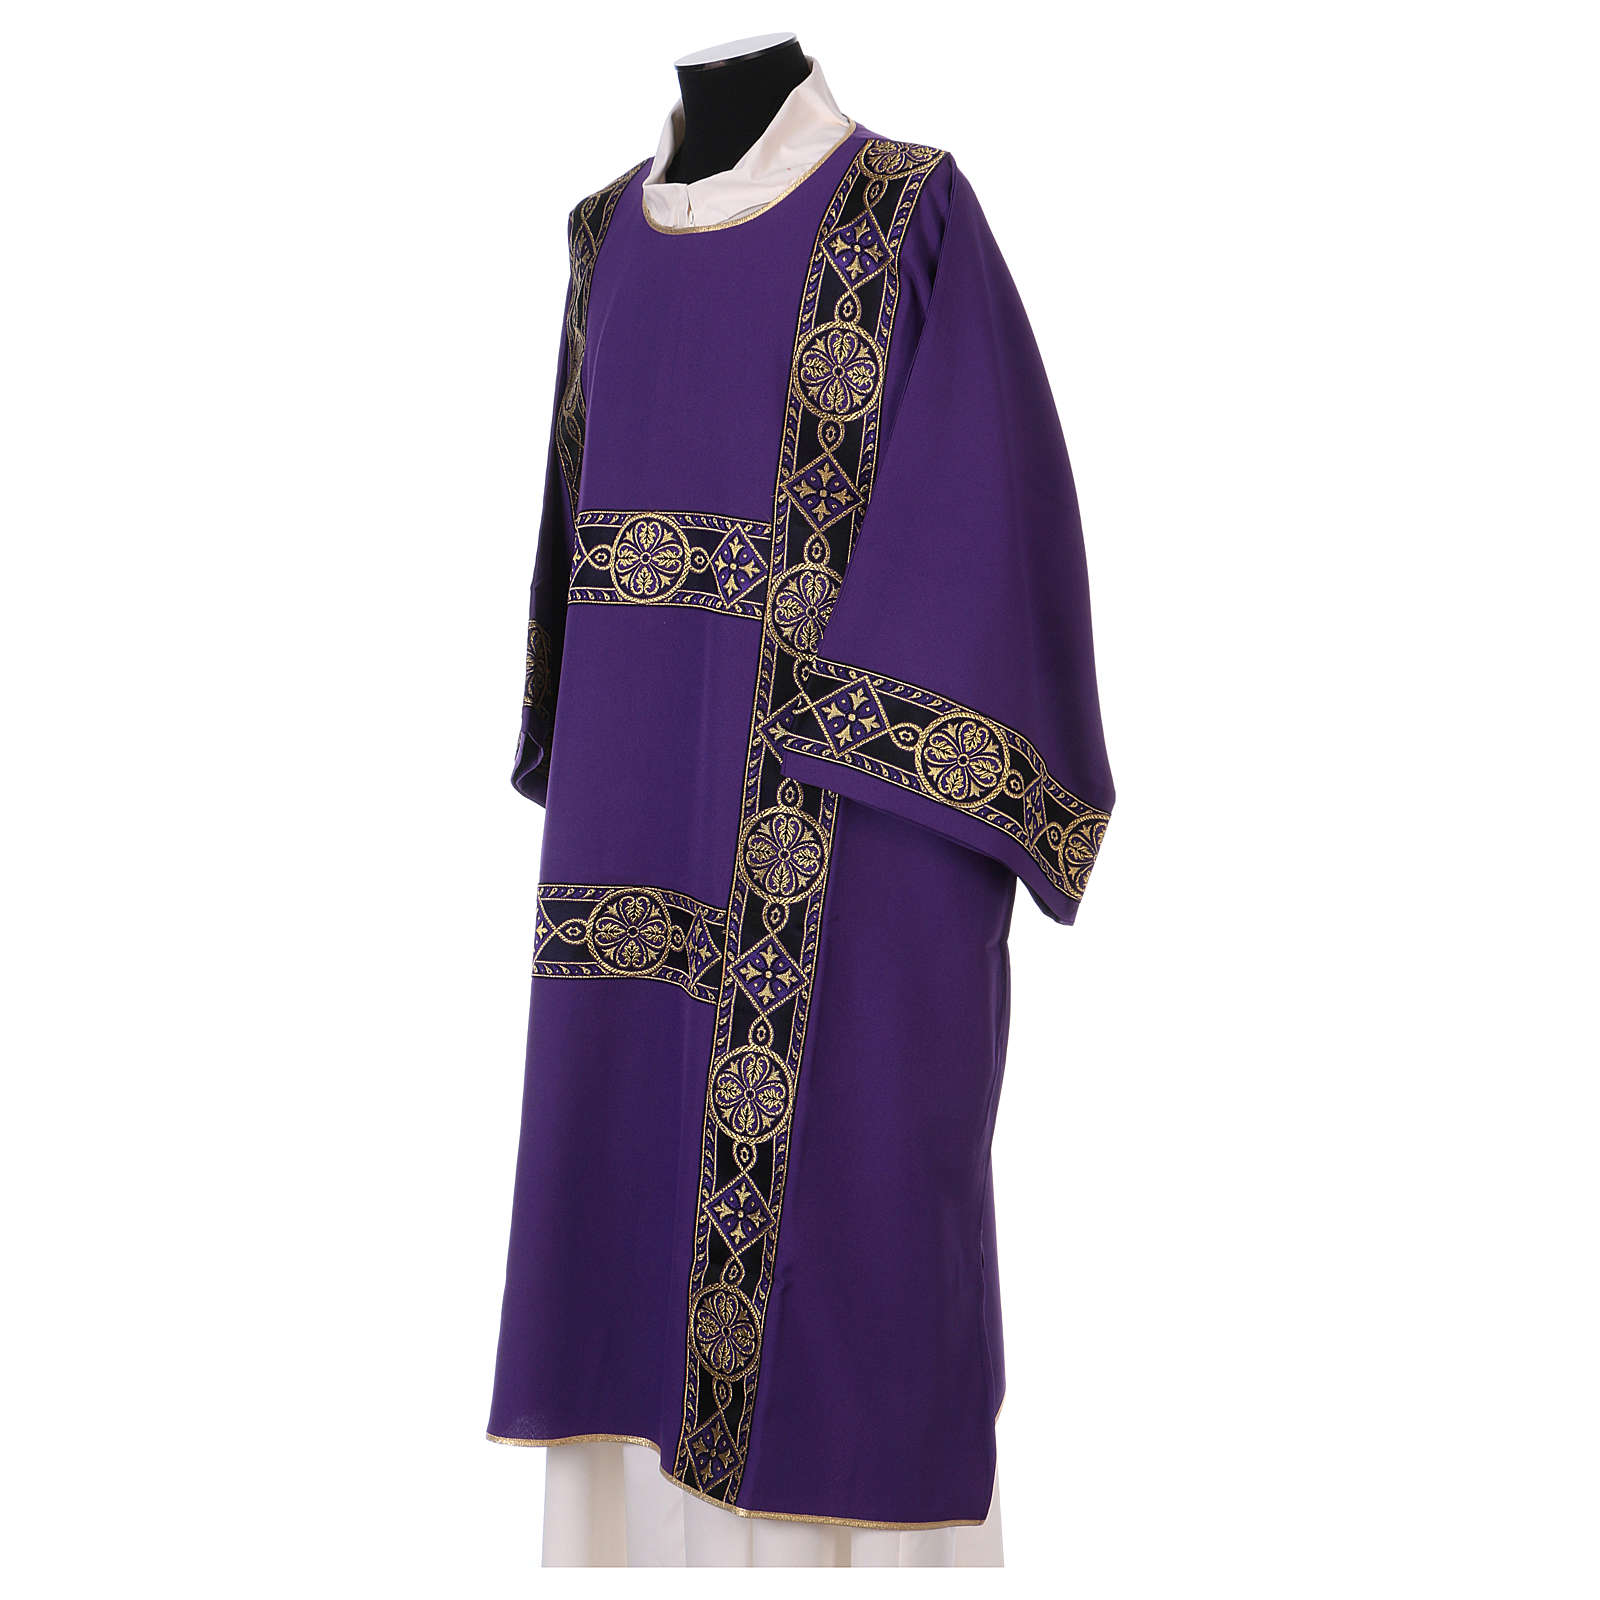 Dalmatic with decoration trim on front, Vatican fabric 100% polyester 4